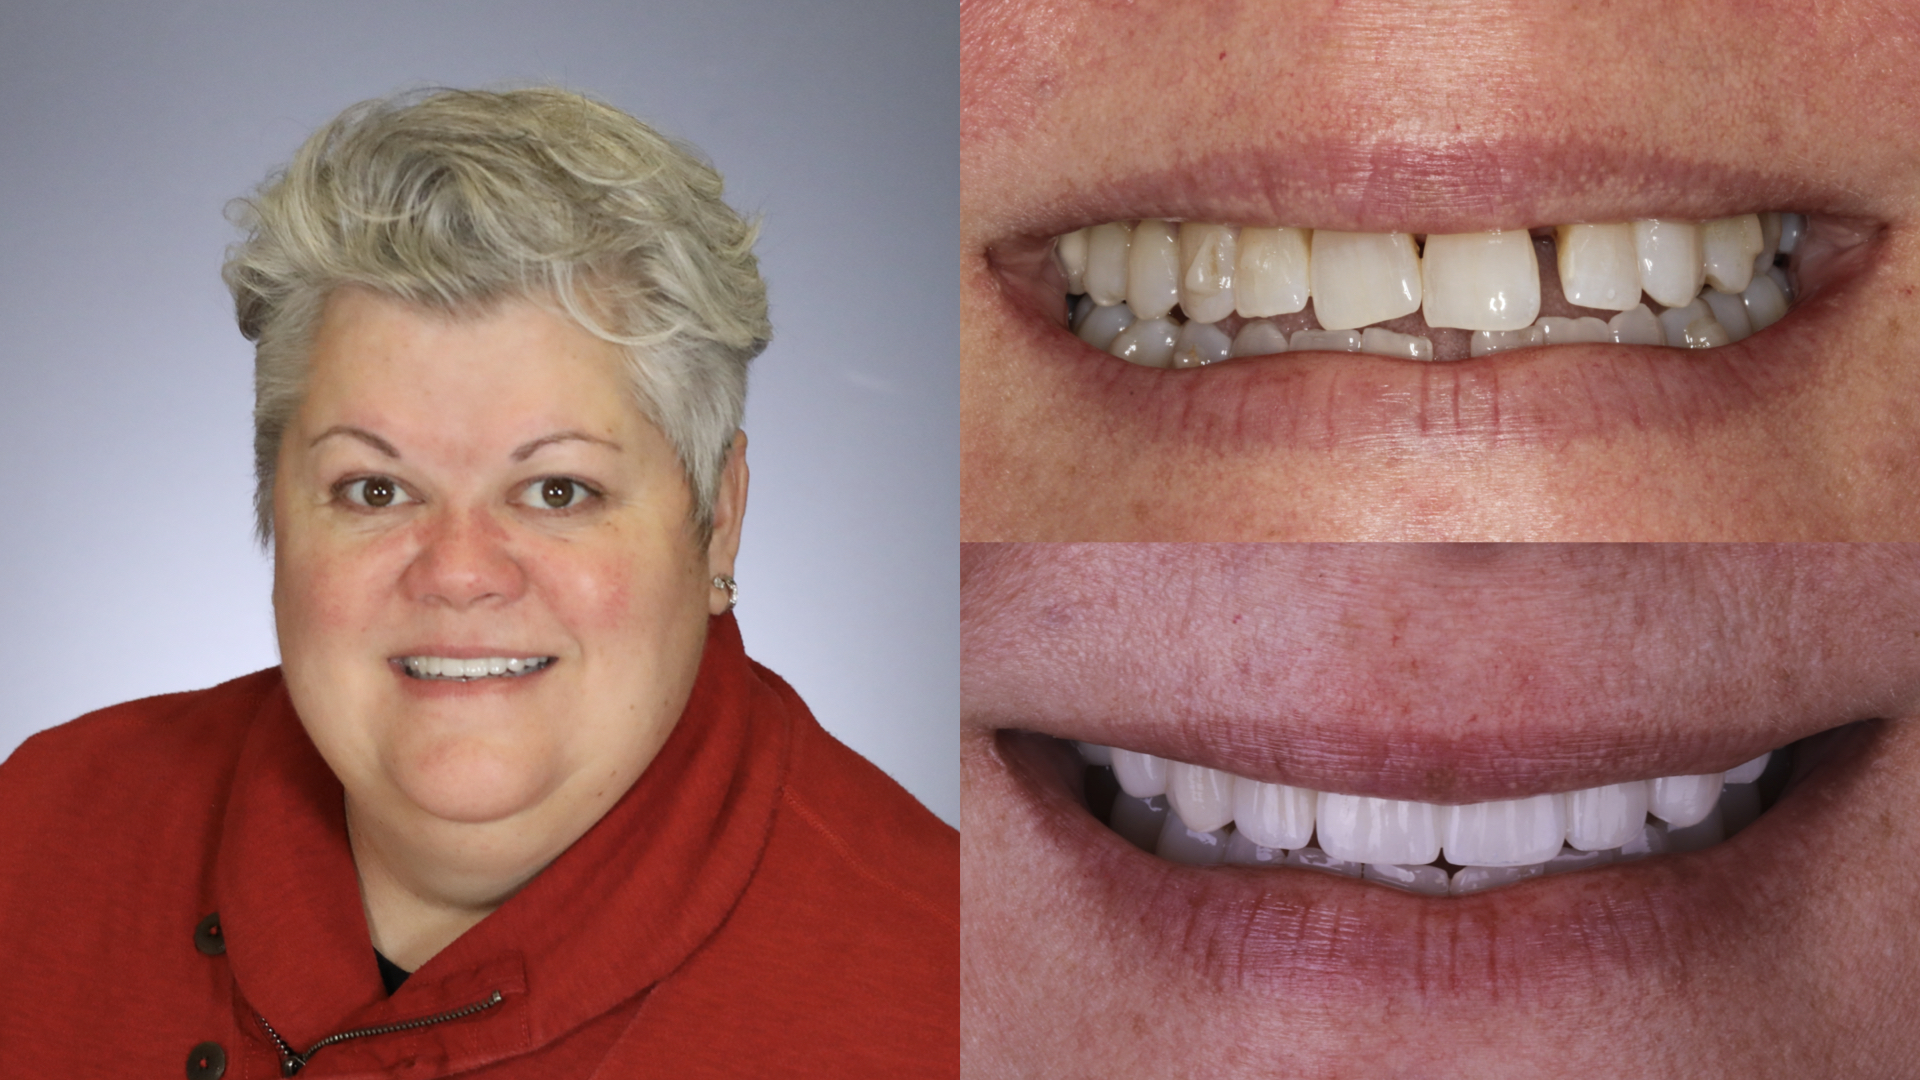 dental implants. porcelain veneers, crowns, bridges